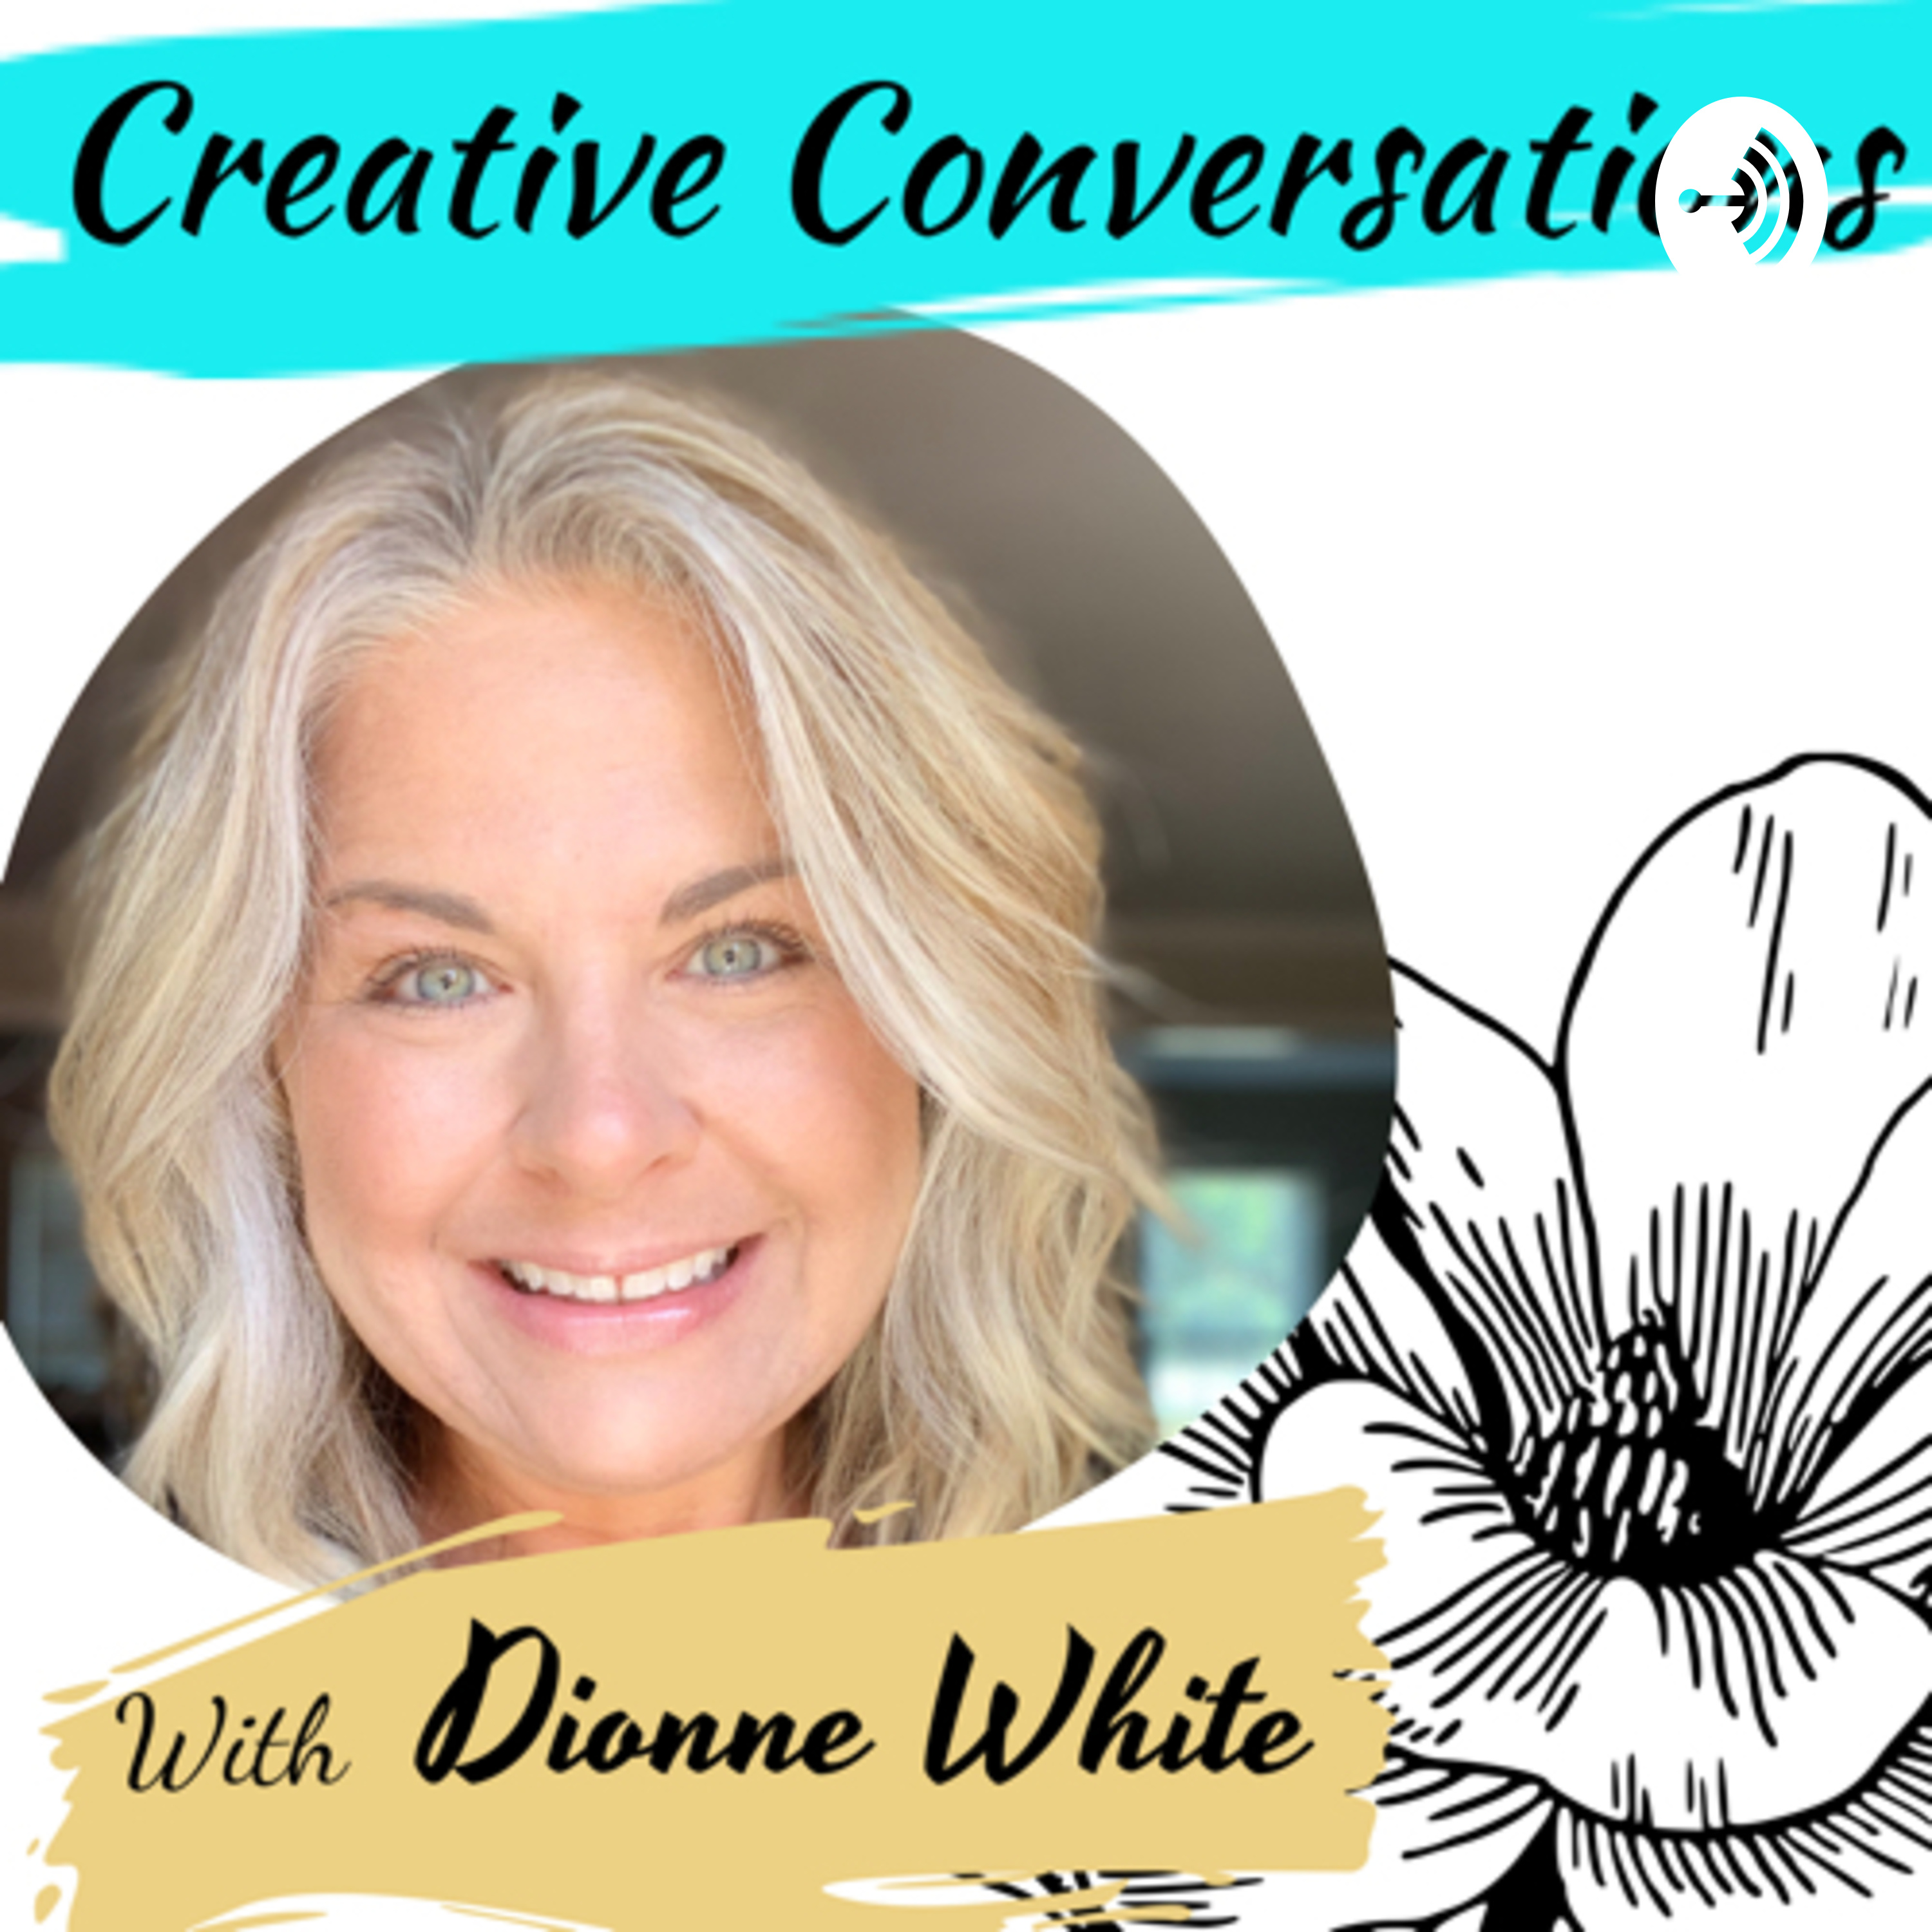 """EP 12 CC w/Dionne White """"Get a Vision and be S.W.I.F.T. about it!"""""""